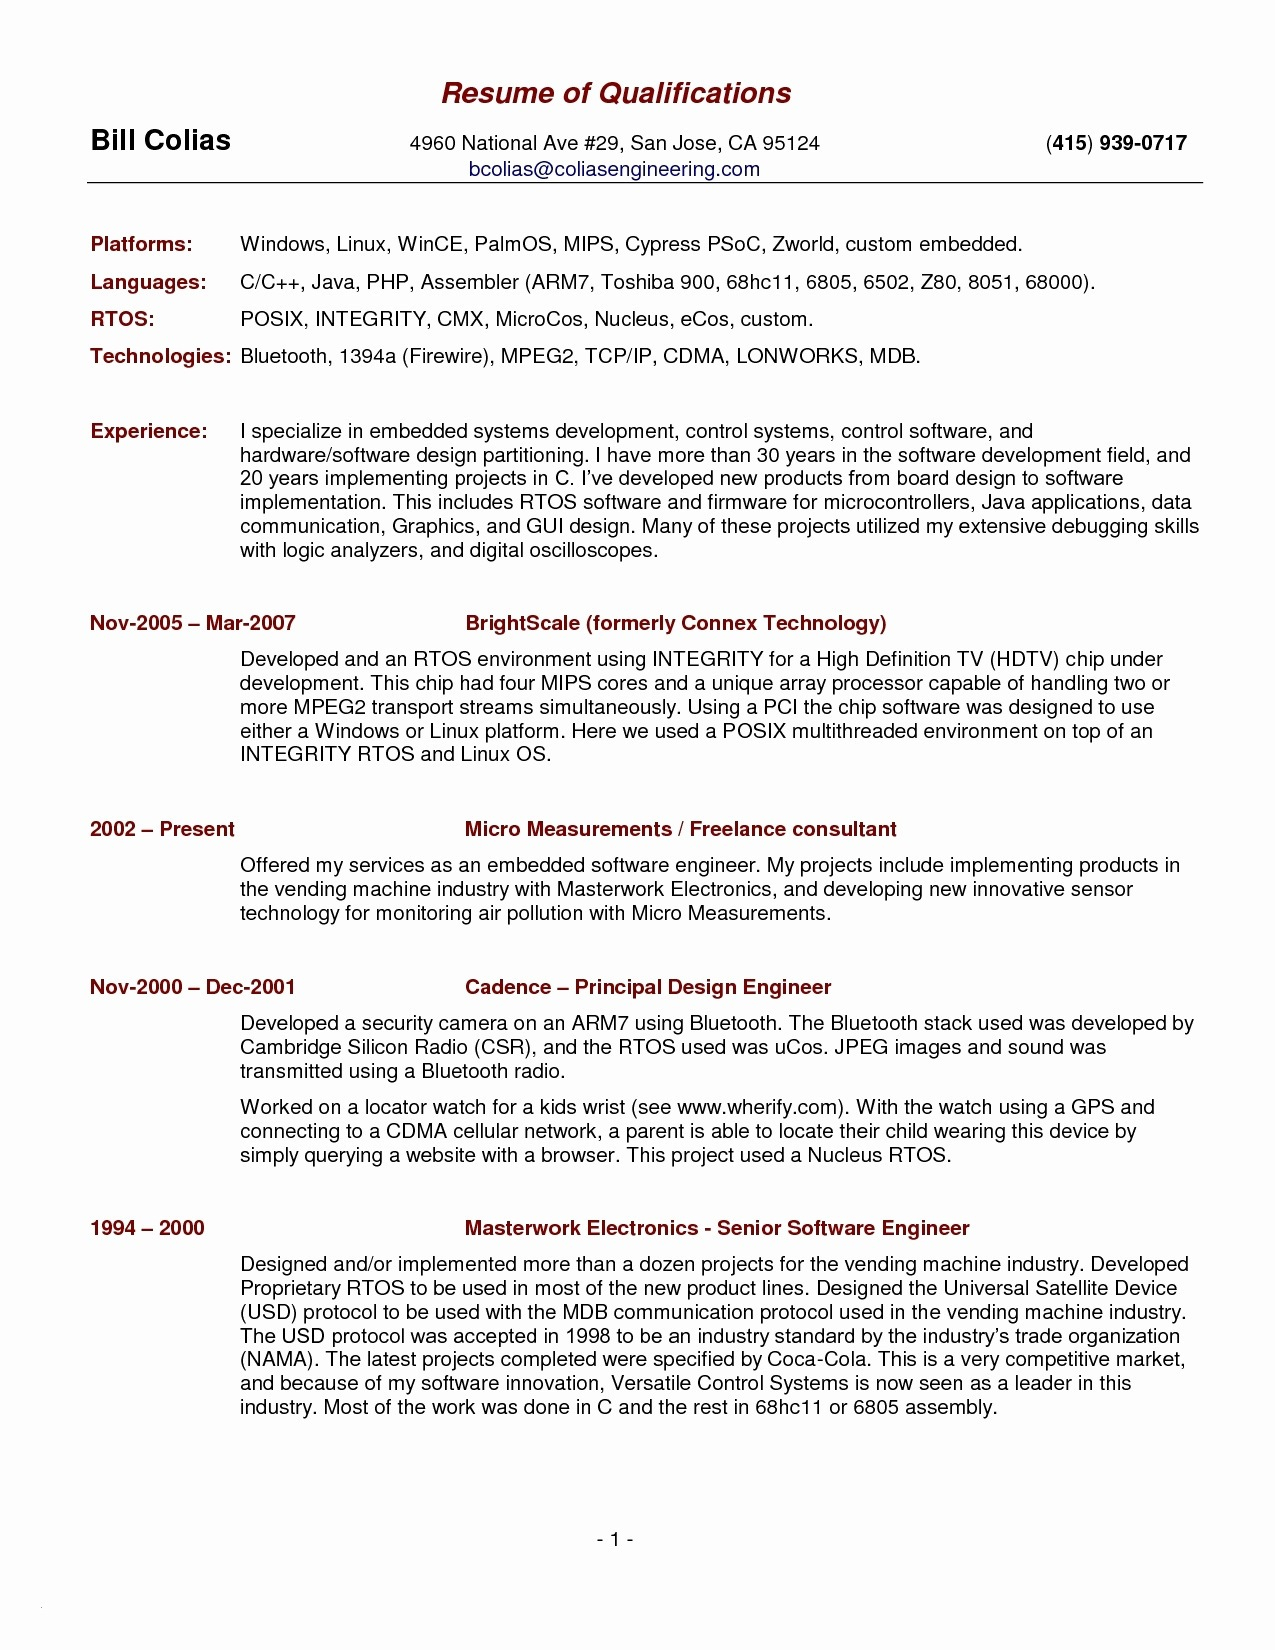 nail technician resume template Collection-Nail Technician Resume Template Awesome Great Standard Resume Sample Gallery 5-b